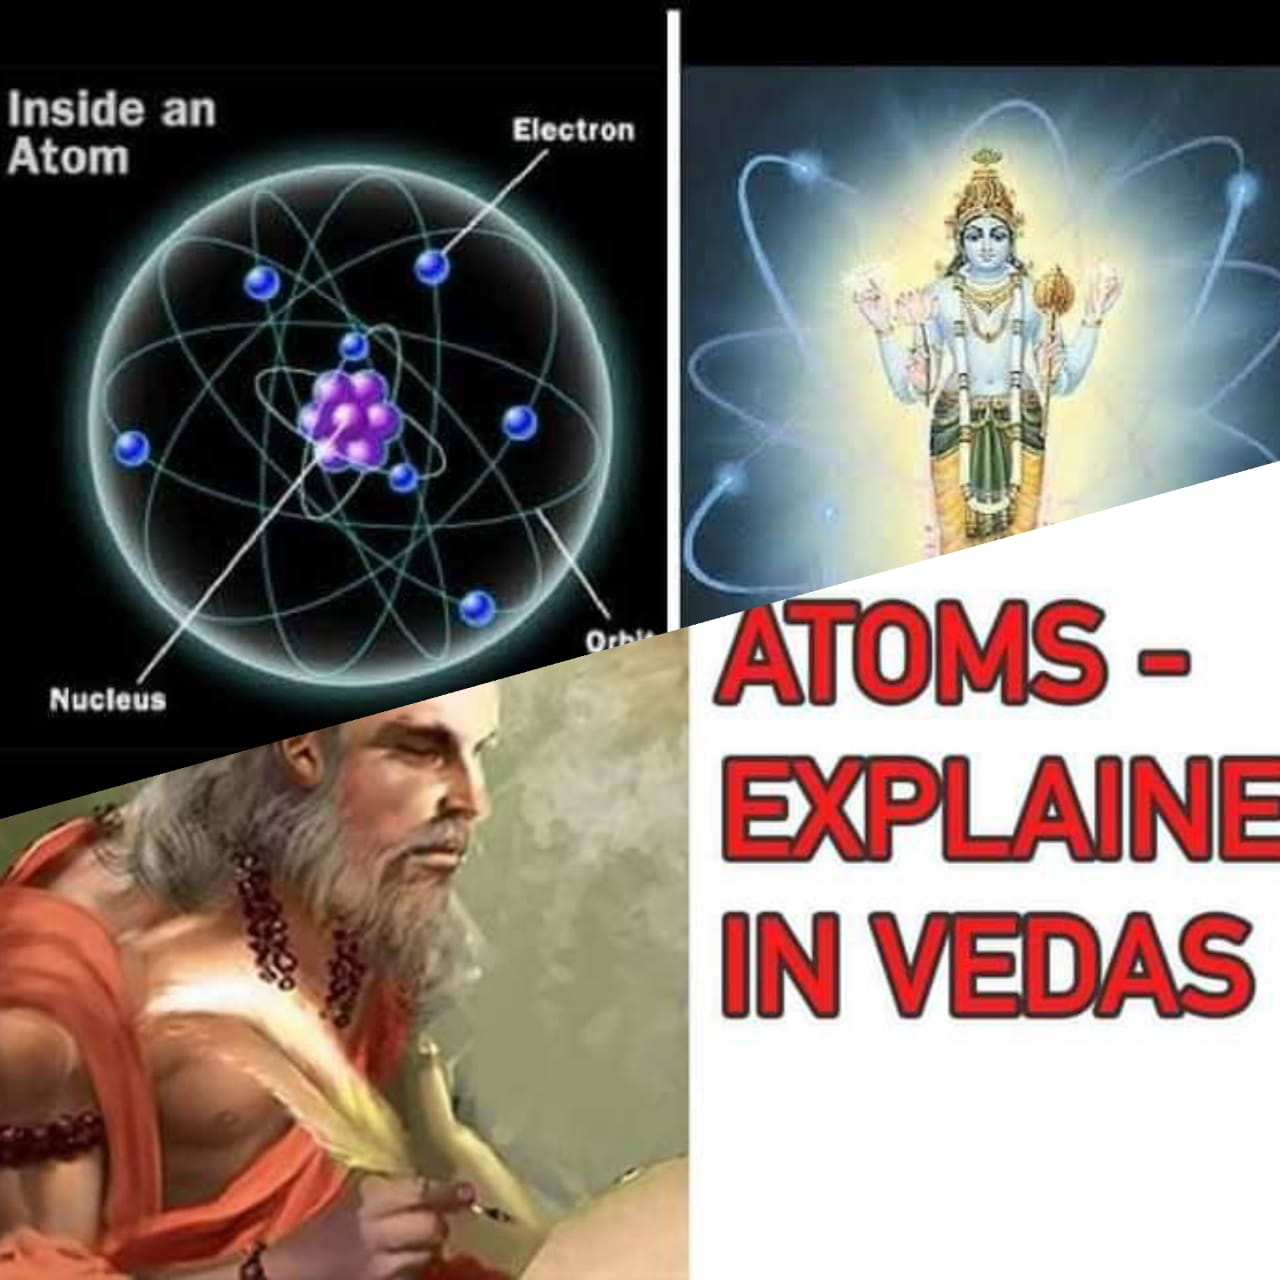 Calculation of Time from the Atom